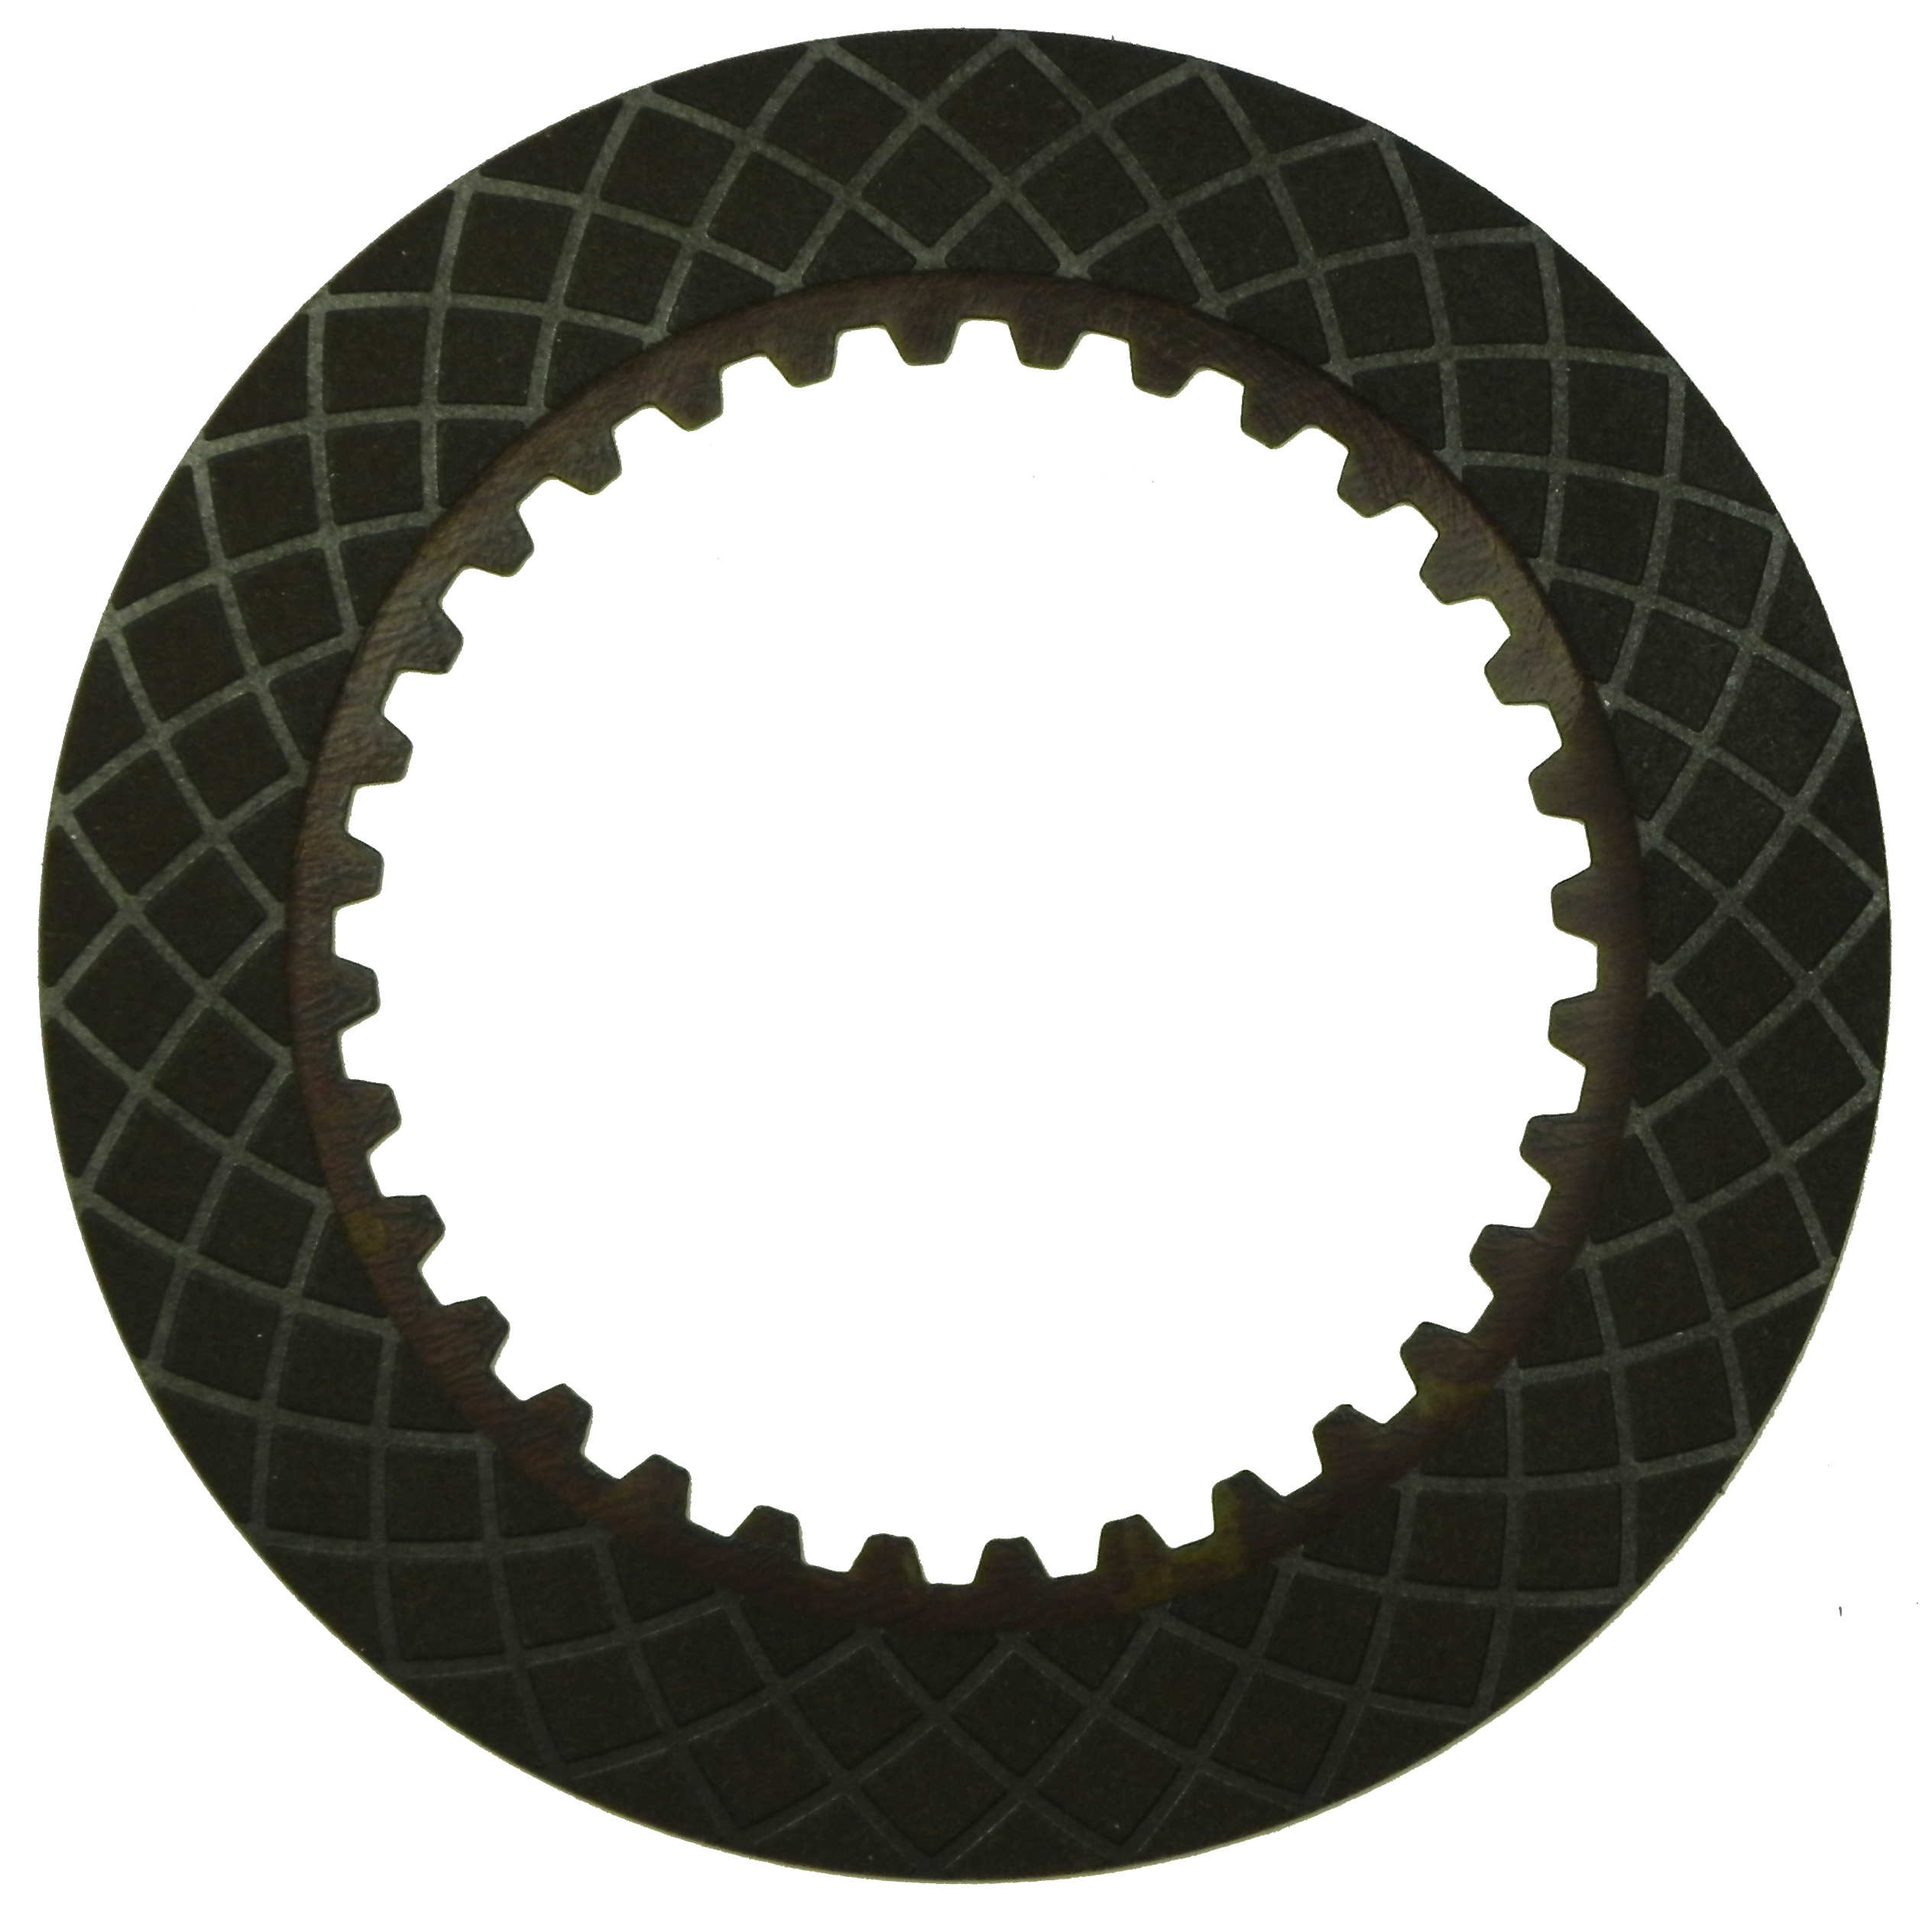 R571831 | 2009-2010 Friction Clutch Plate GPX 3rd GPX